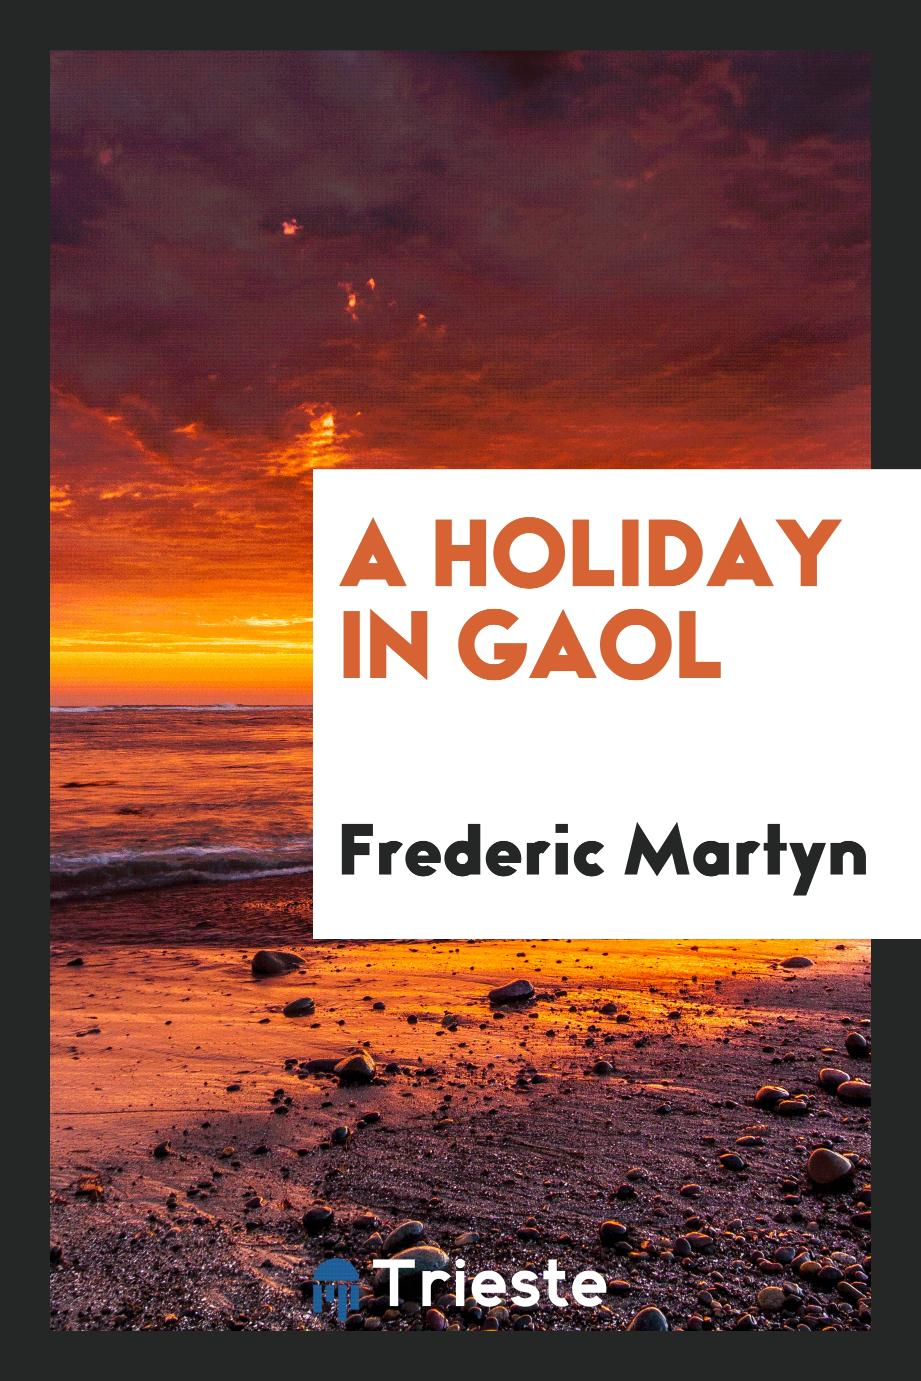 A Holiday in Gaol